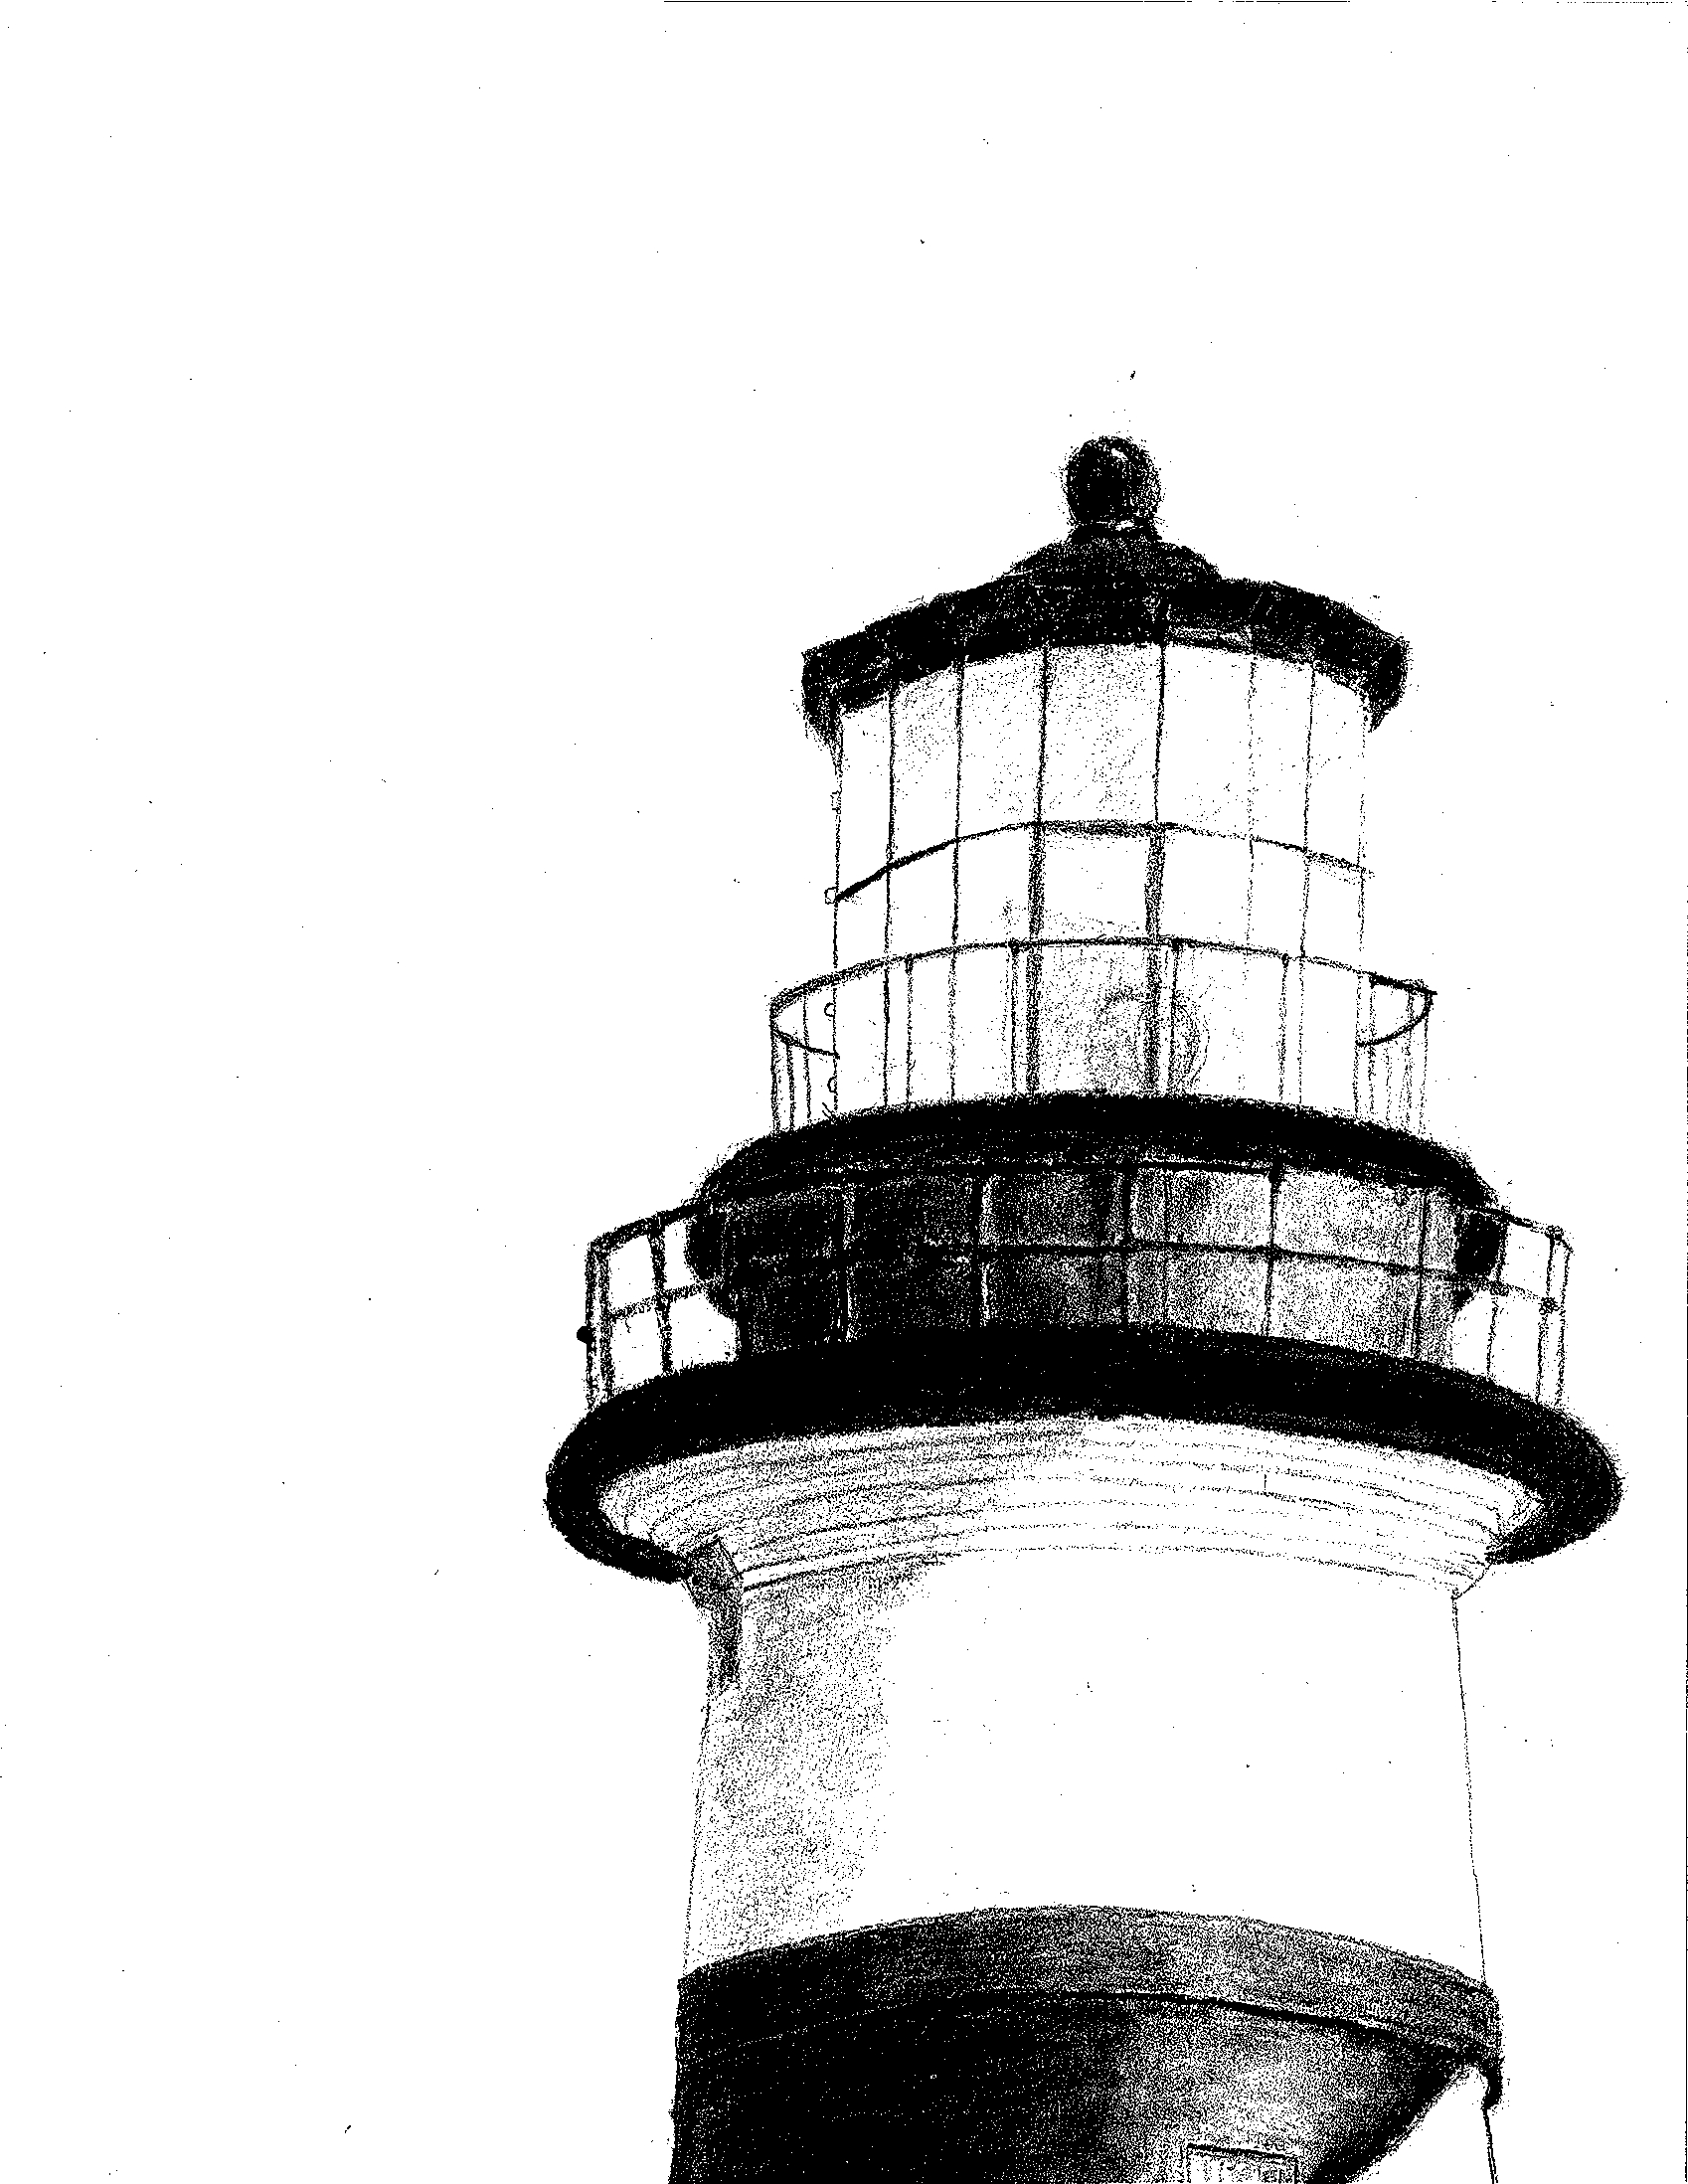 Drawn lighhouse line drawing Clipart Free Art Clip Free